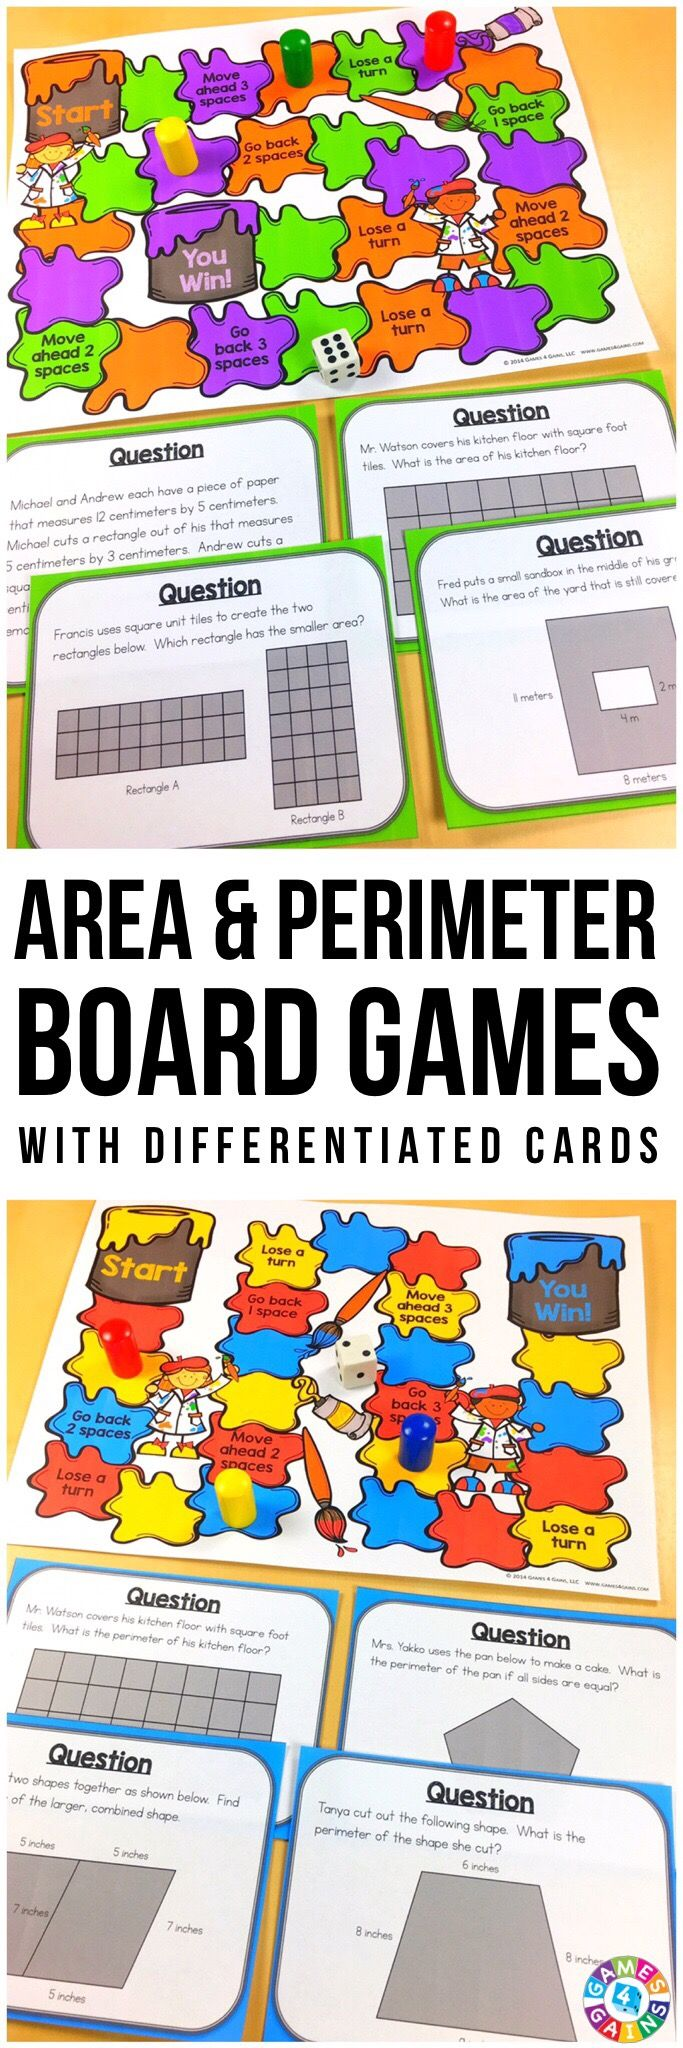 """LOVE the differentiated levels and approaches provided in these area and perimeter problems!"" This Area & Perimeter Games Bundle includes 2 different board games for practice with finding the area of rectangles and the perimeter of polygons. Each game includes 36 word problem game cards and a game board. These games support 3rd grade Common Core standards 3.MD.5, 3.MD.6, 3.MD.7, and 3.MD.8 as well as 4th grade Common Core standard 4.MD.3."